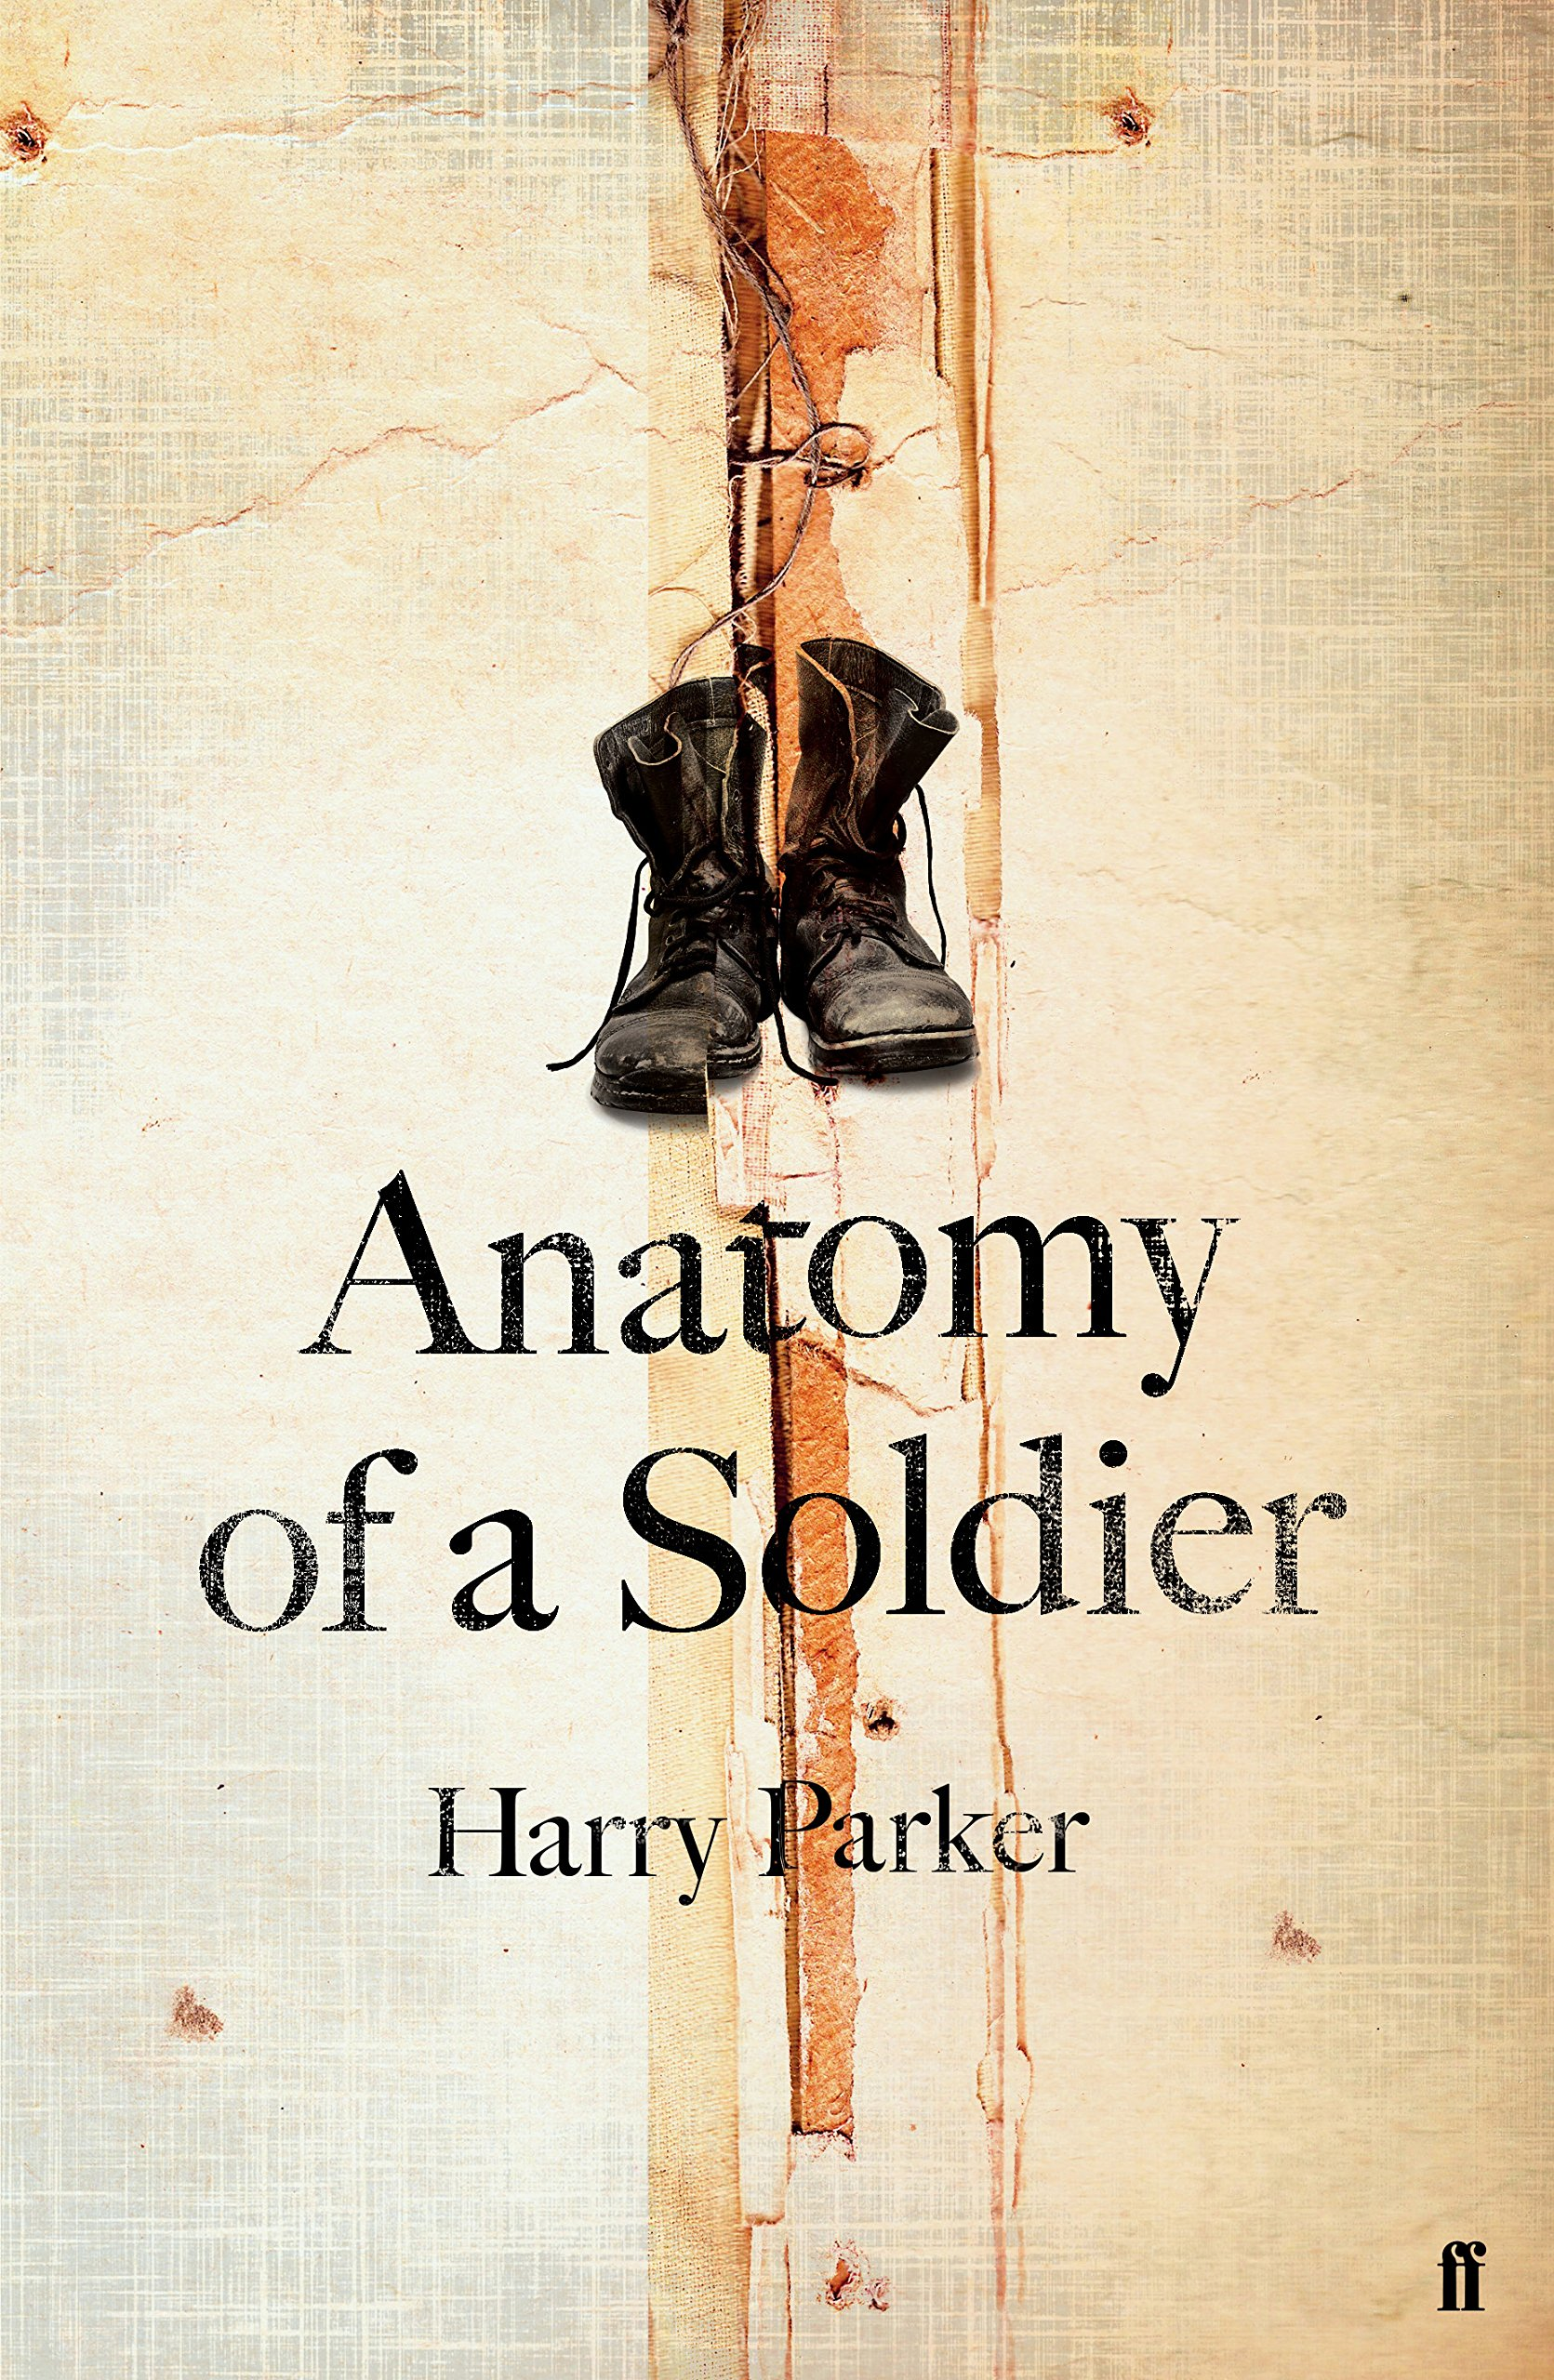 Anatomy of a Soldier: Amazon.co.uk: Harry Parker: 9780571325818: Books